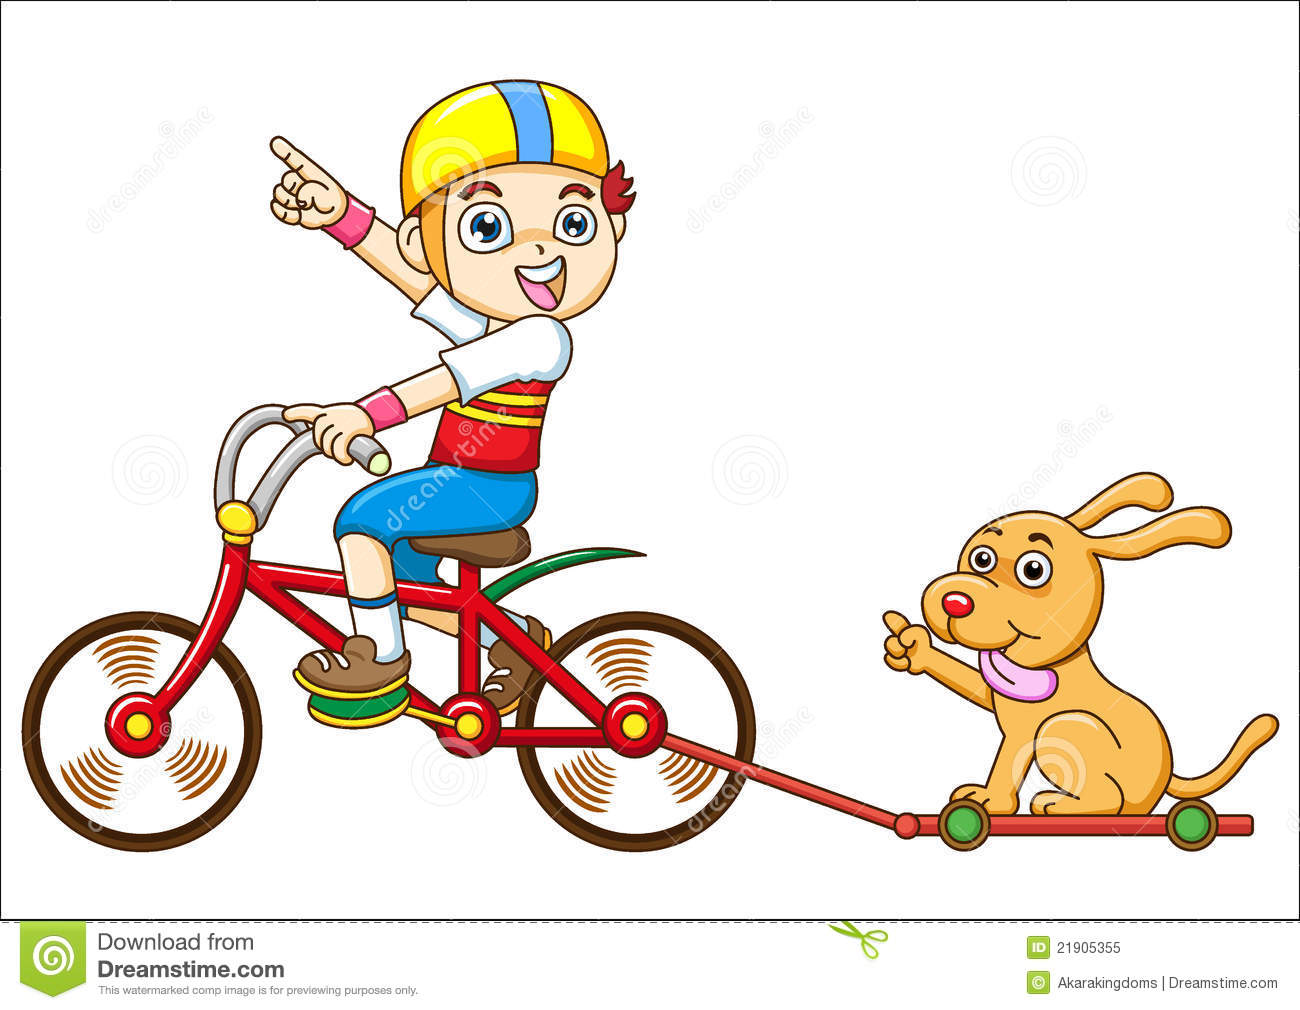 dog riding motorcycle clipart - photo #9